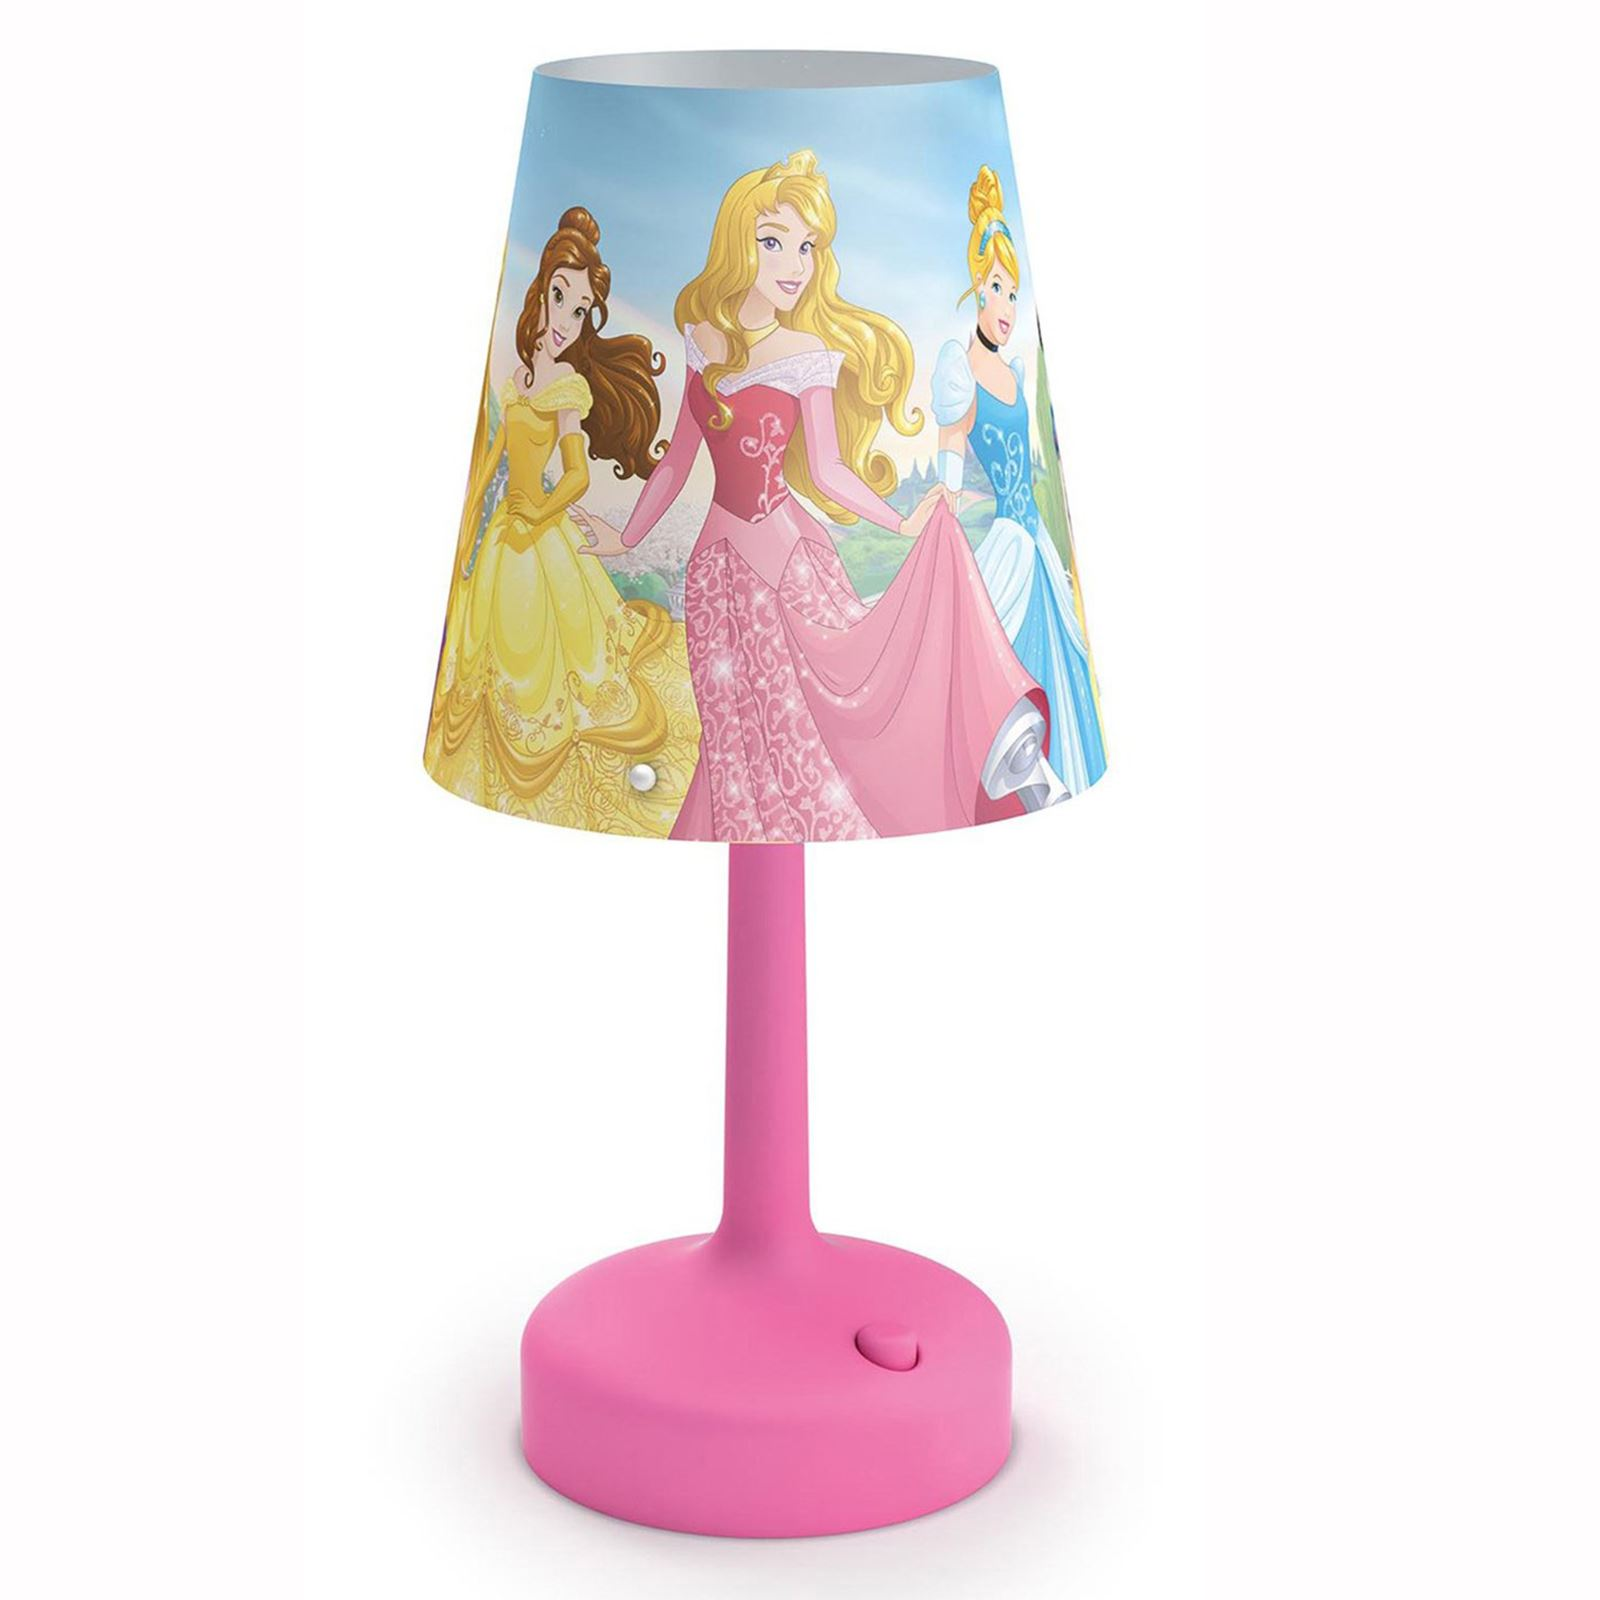 Bedroom Lamps On Ebay: DISNEY PRINCESS PORTABLE TABLE LAMP KIDS BEDROOM LIGHTING